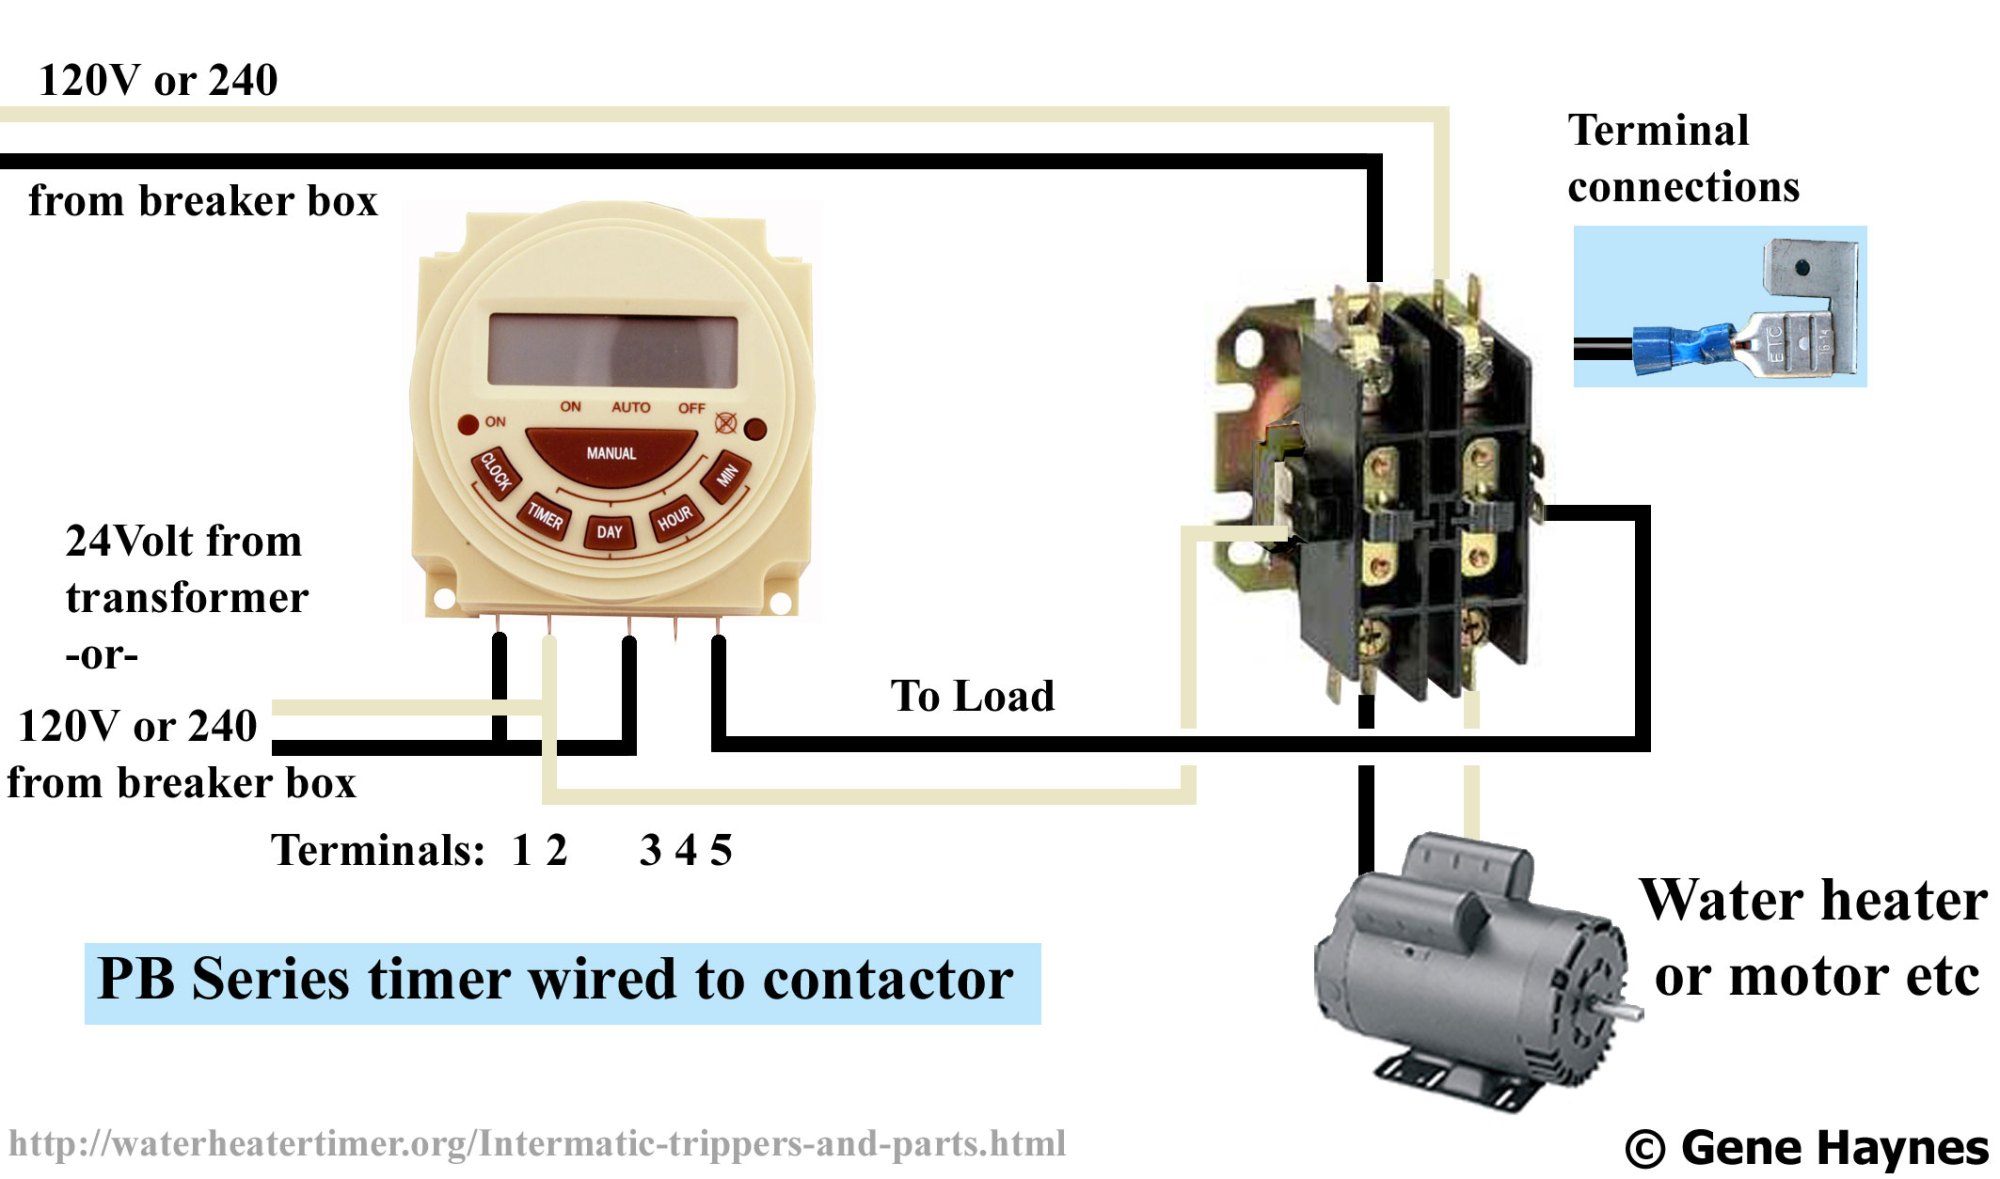 hight resolution of larger image connect modular timer to contactor pb series battery operated pool spa timer 7 programs 7 day 0r 24 hour 120v or 240v spdt no nc